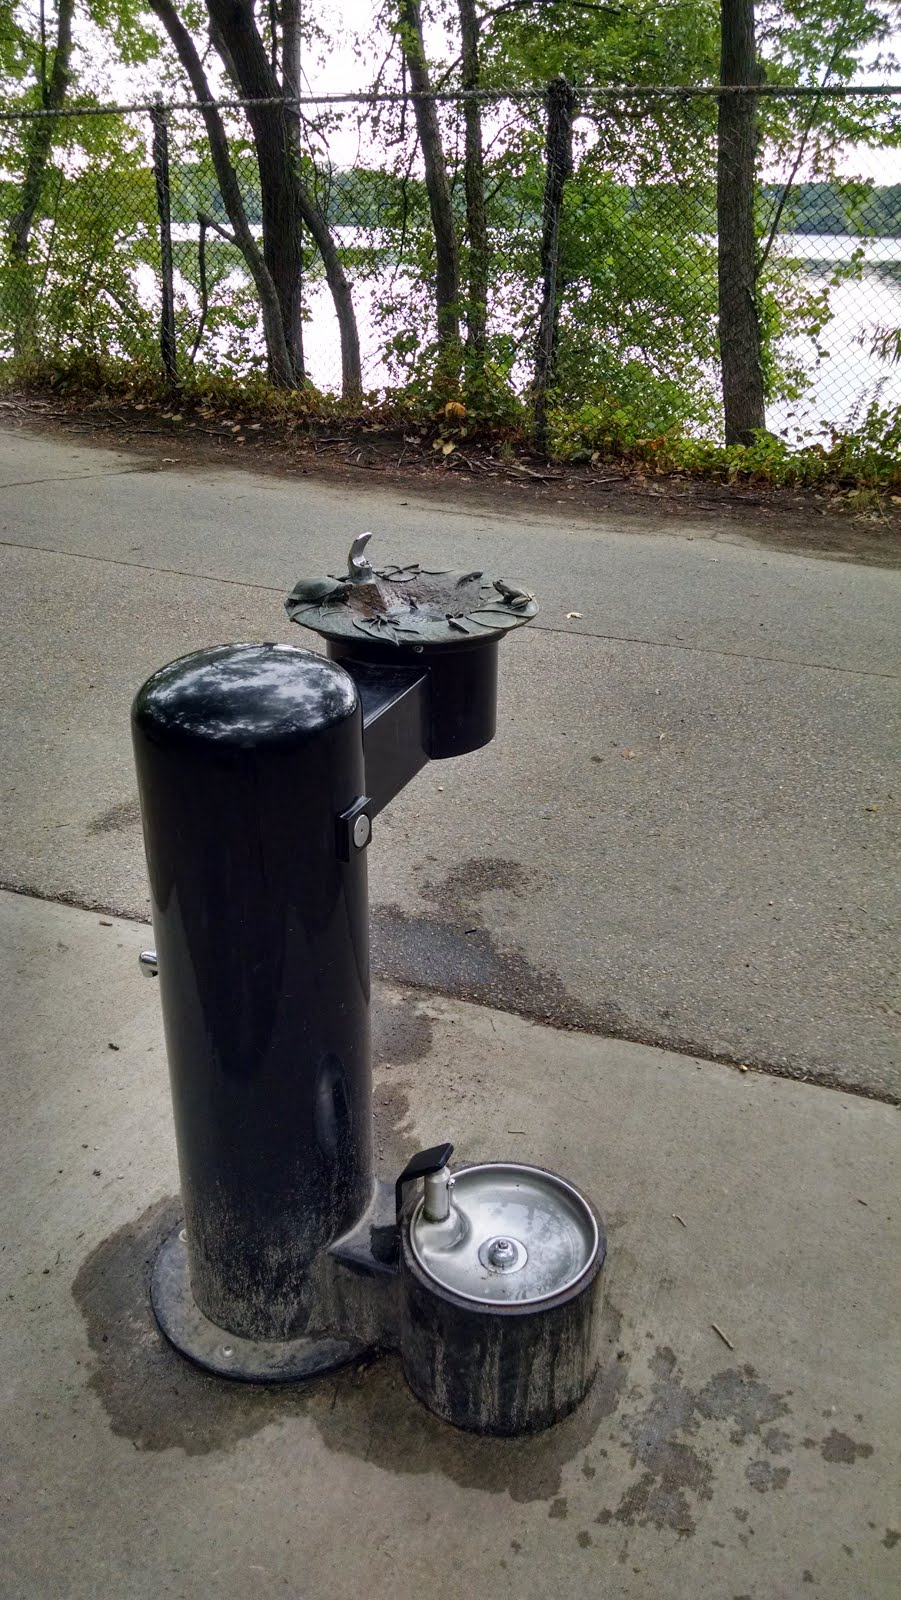 this is a great example of how to create special drinking fountains without huge budgets and too much fuss artists could be to do something